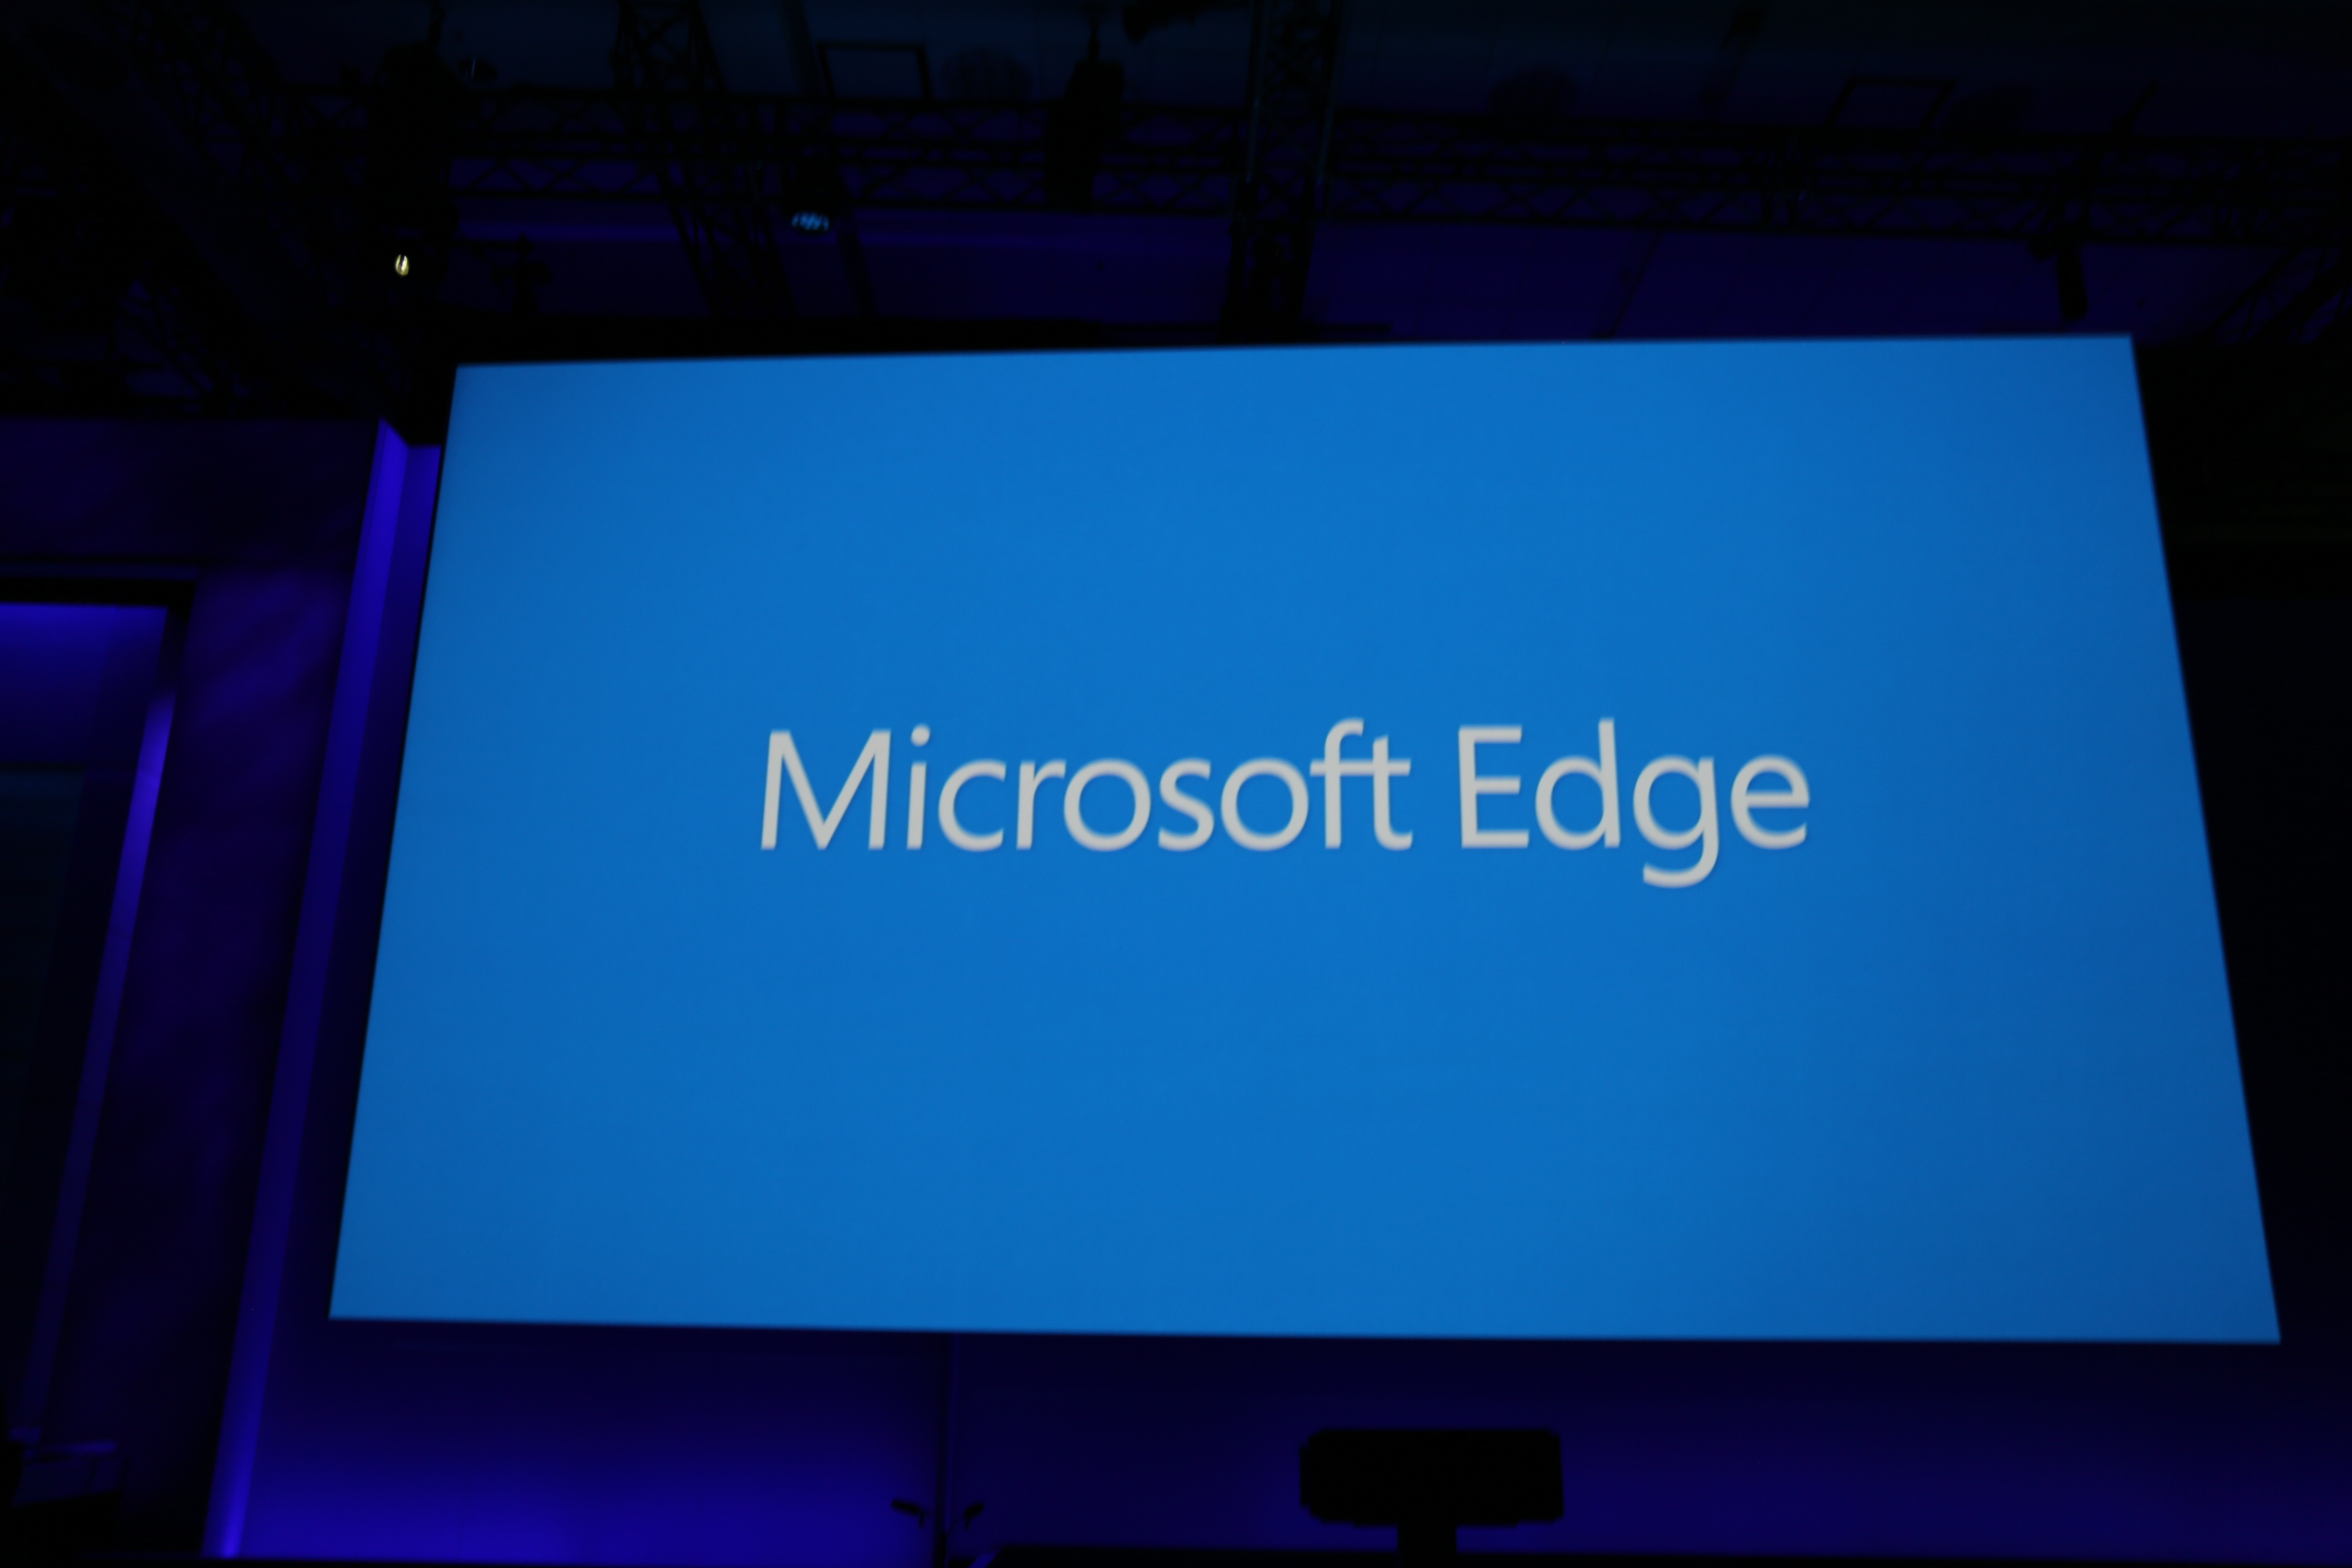 Microsoft S New Browser Will Be Called Microsoft Edge Techcrunch